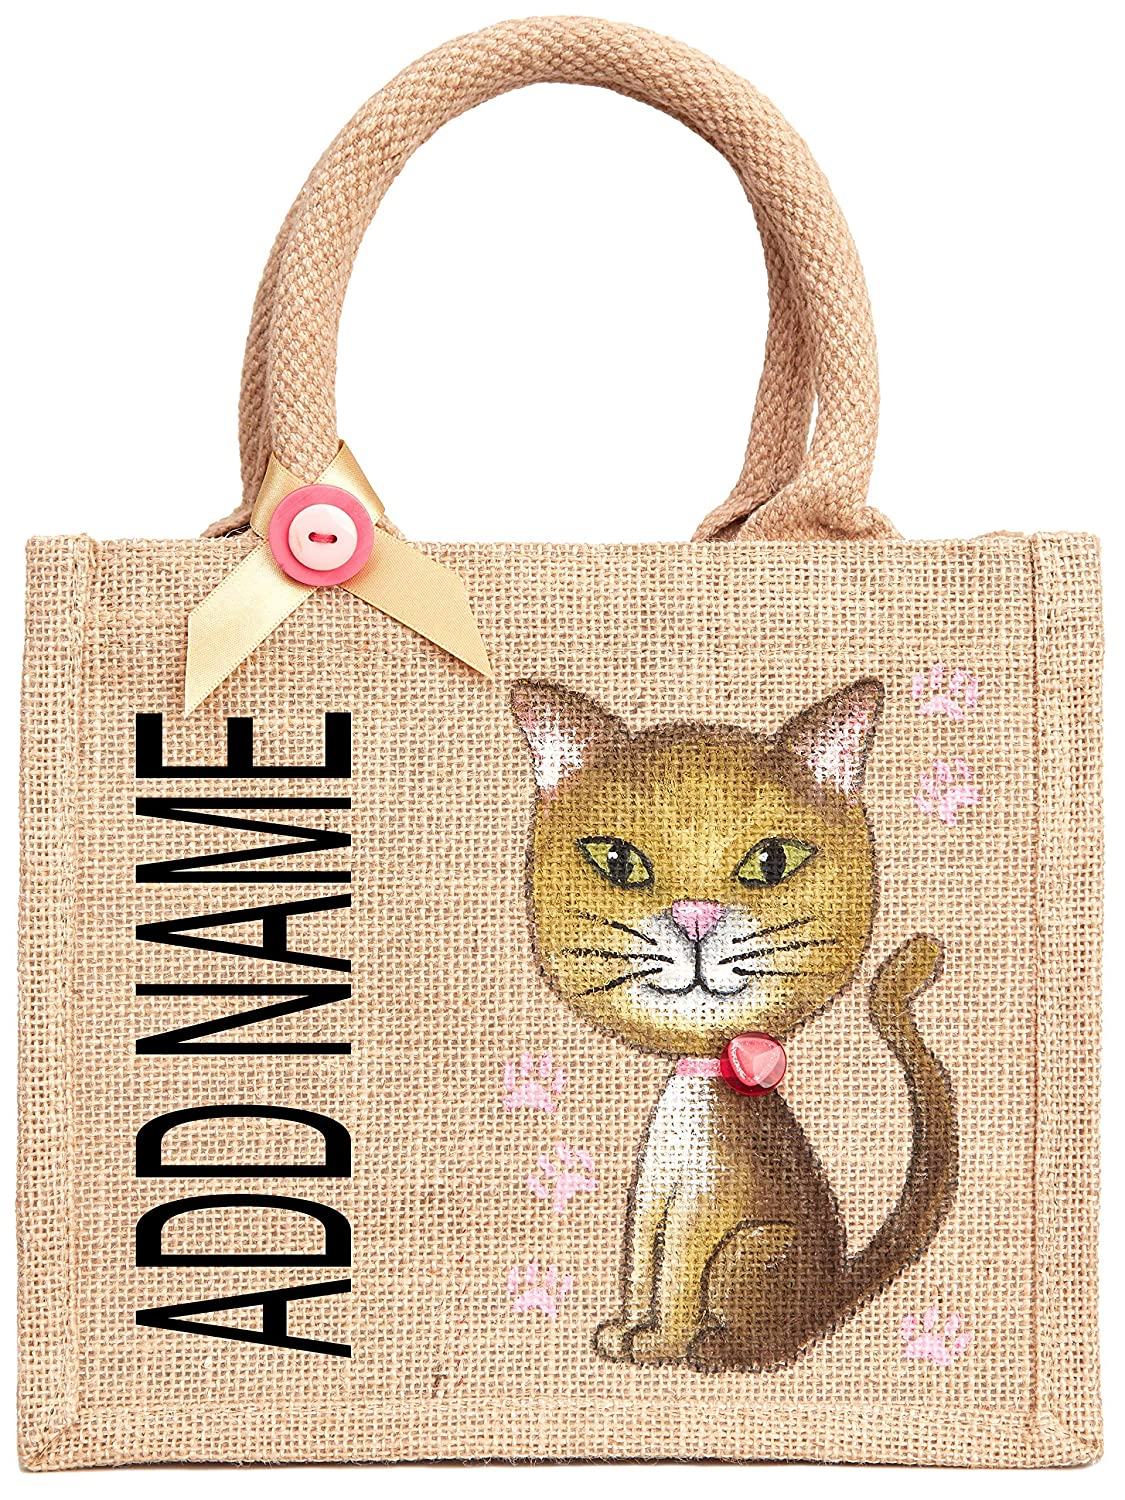 Personalised Cat Bag Add Your Name Eco Friendly Small Tote Pet Bag 20 X 22cm Cat Lovers Gift Animal Toy Bag Gift Ideas For Animal Lovers Amazon Co Uk Handmade